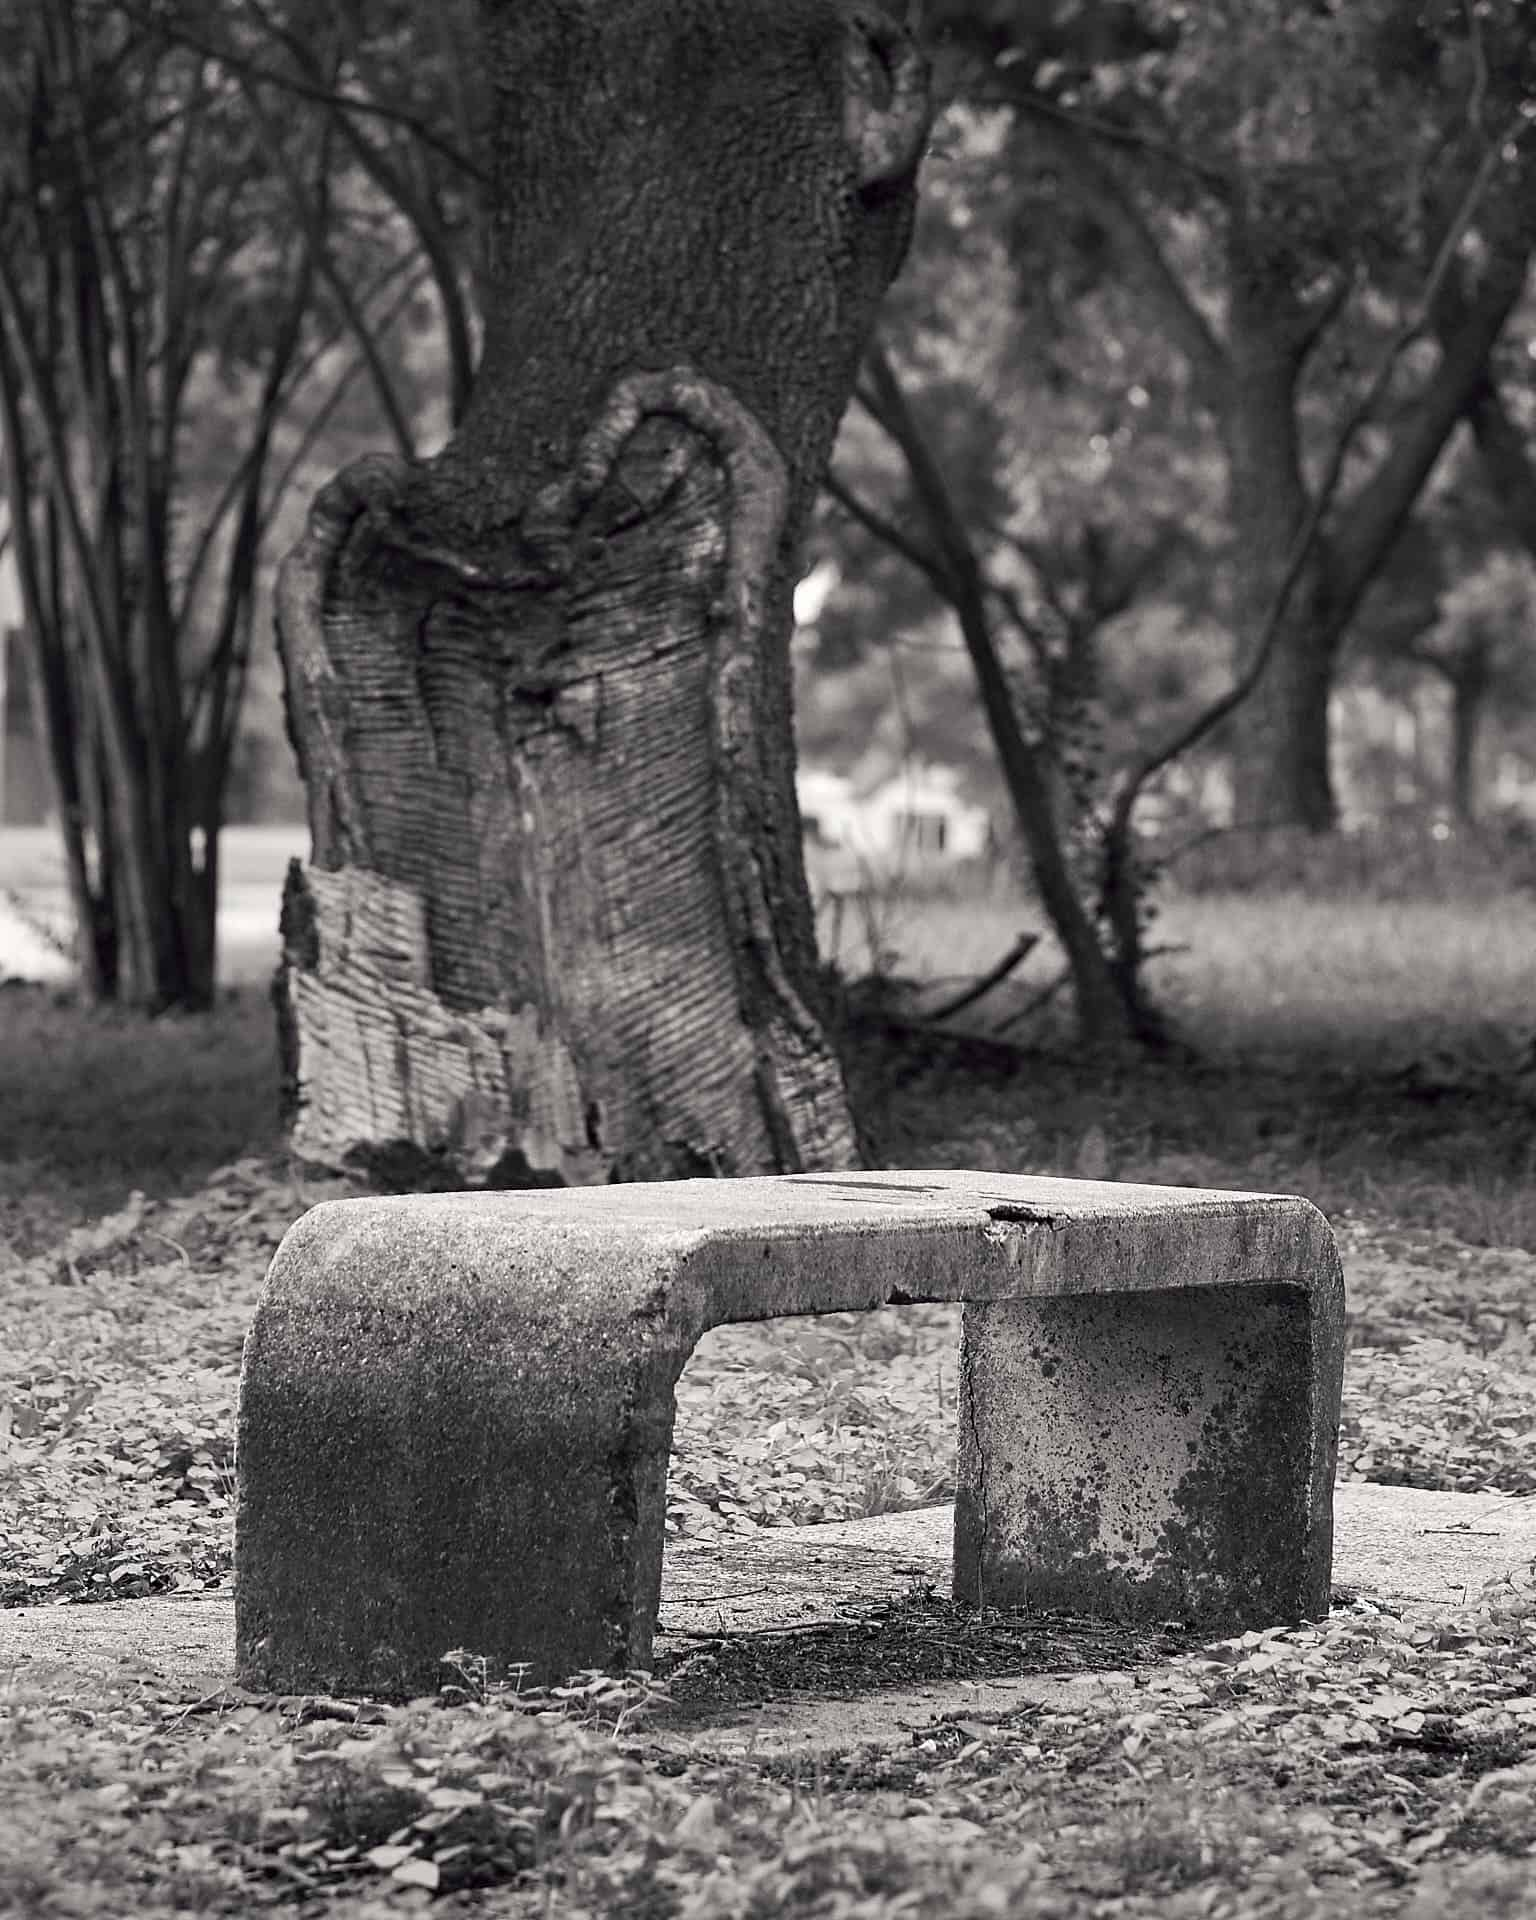 An old bench in front of a tree.